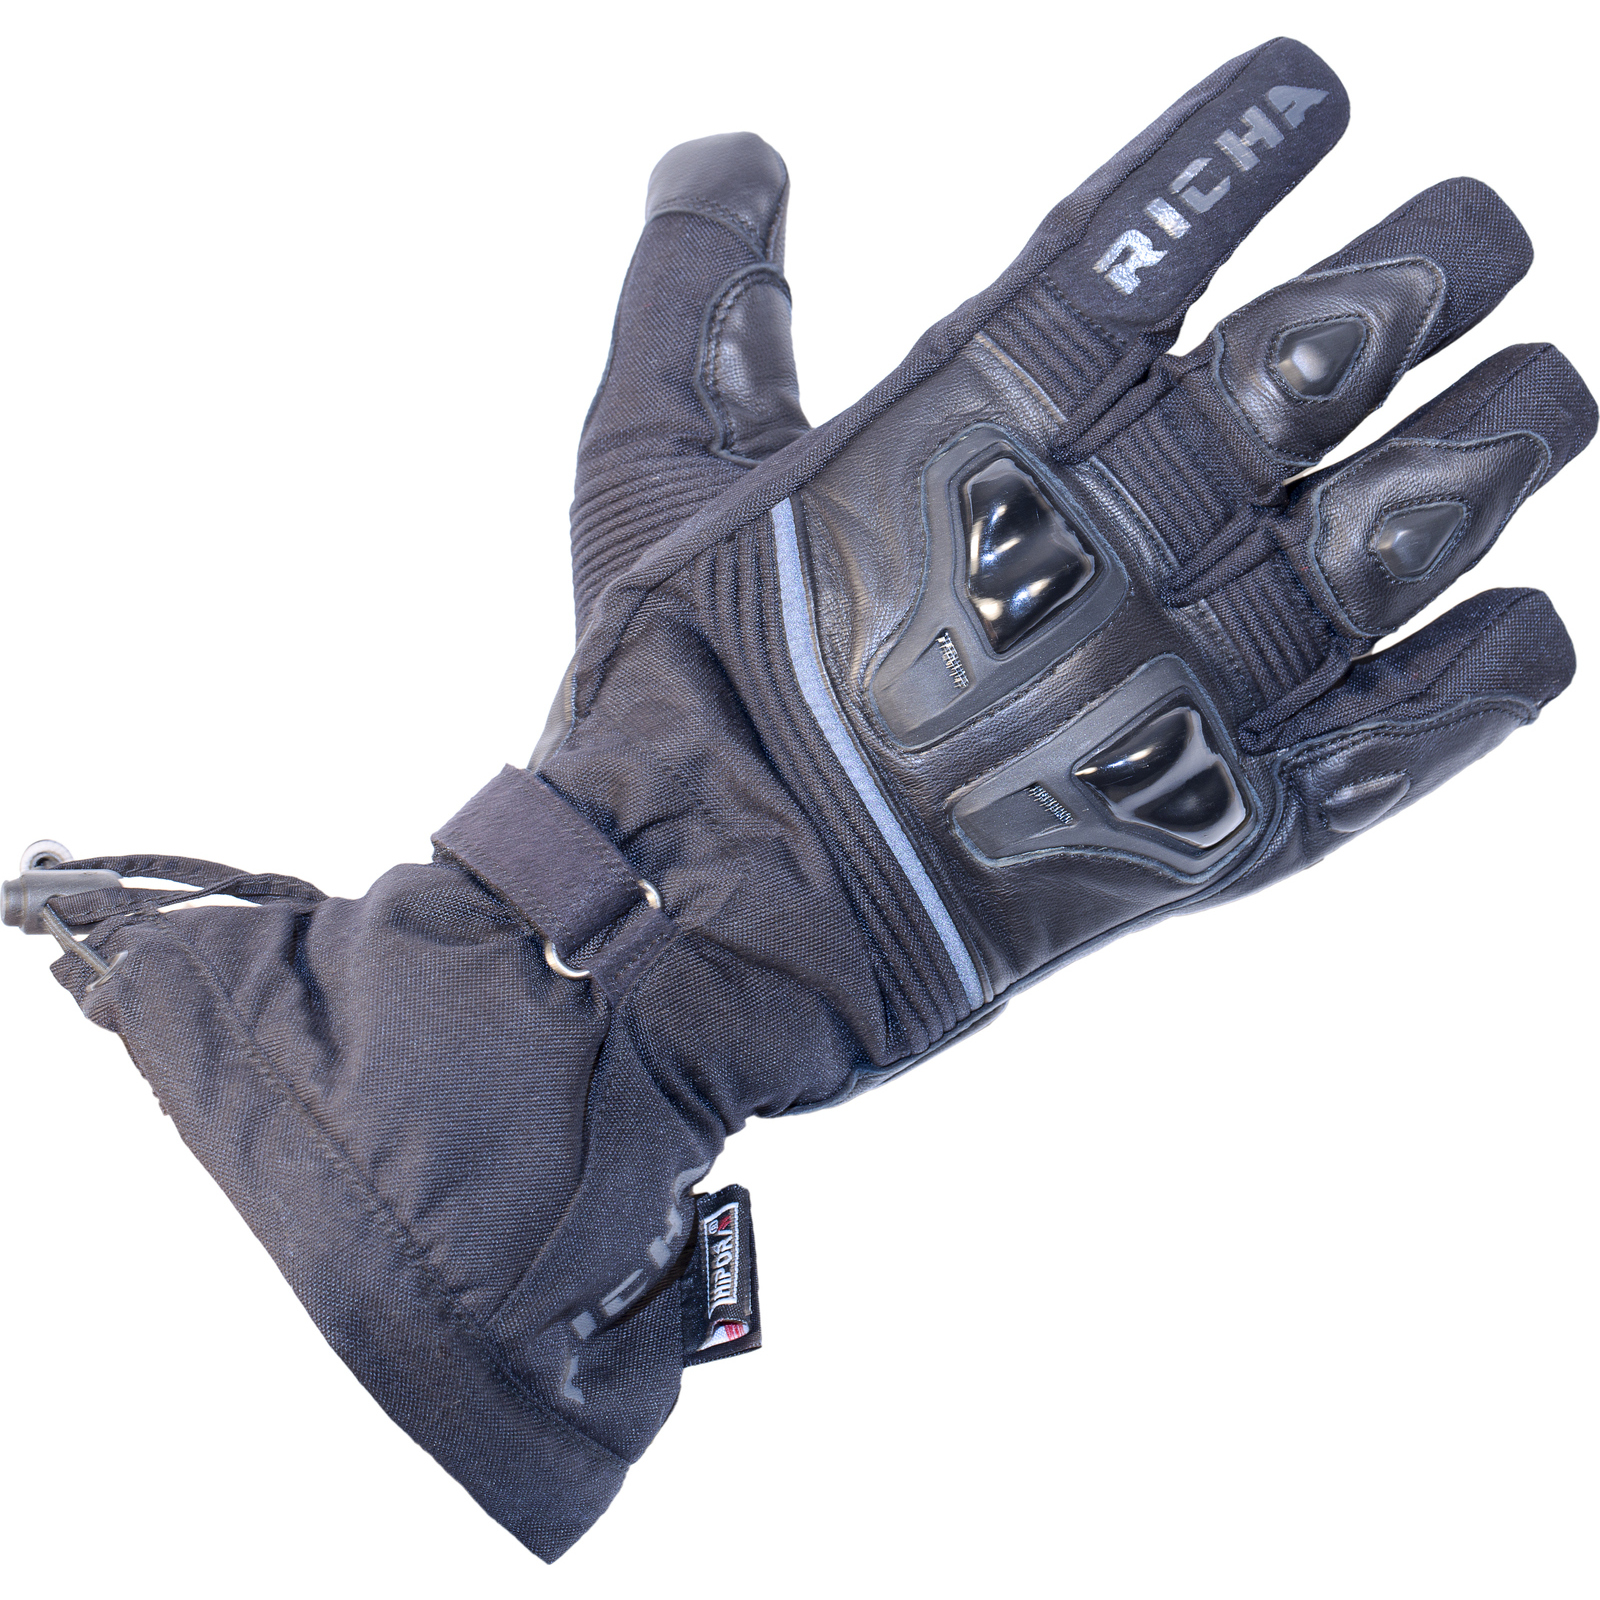 Motorcycle gloves richa - Richa Glacier Motorcycle Gloves Textile Leather Winter Wp